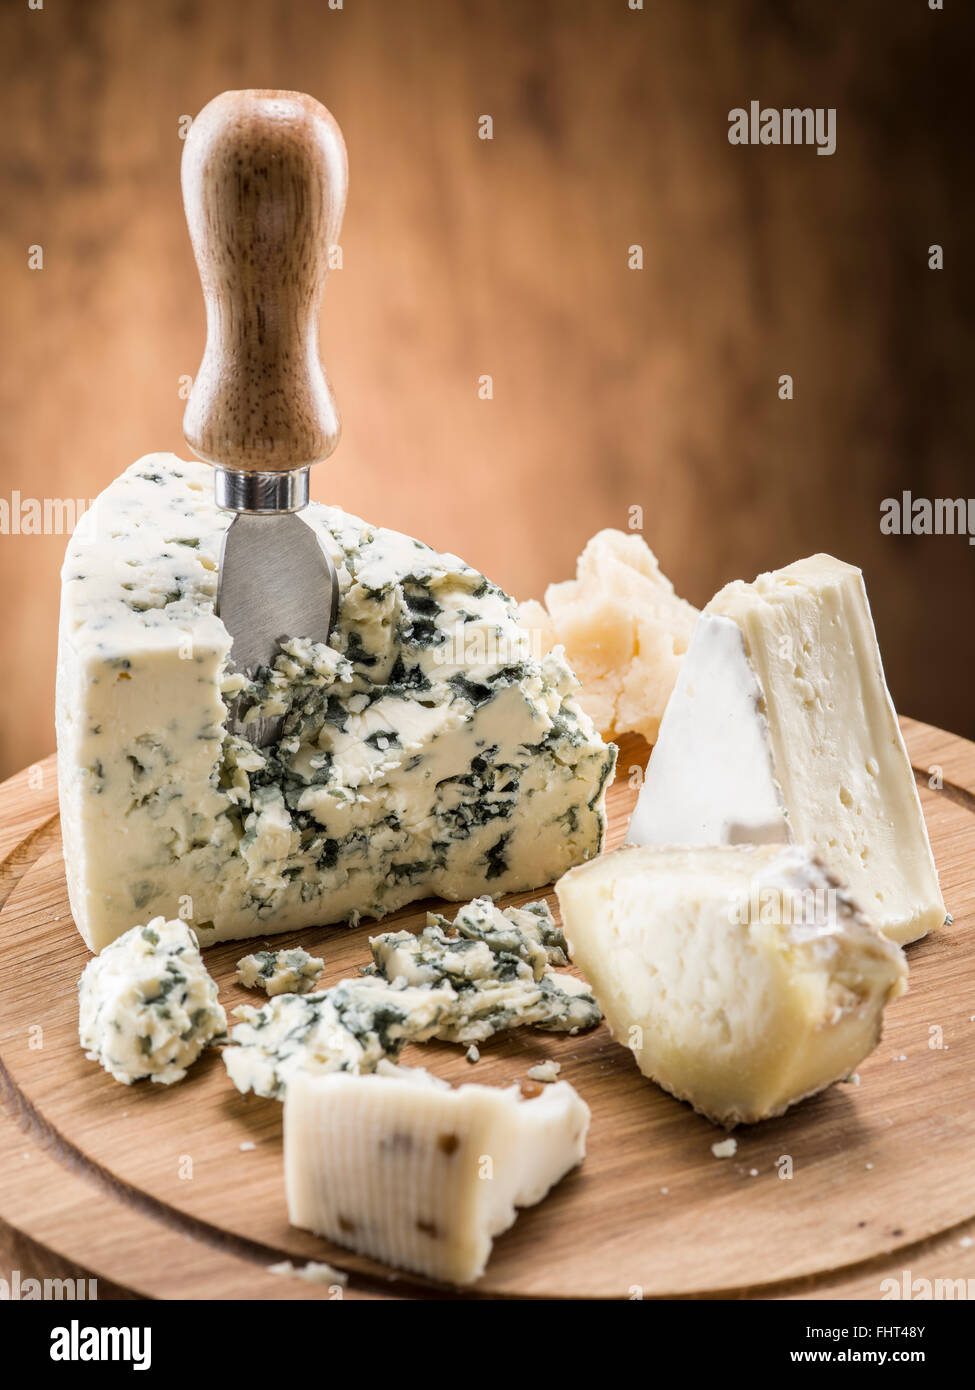 Danish blue cheese on a wooden board. - Stock Image